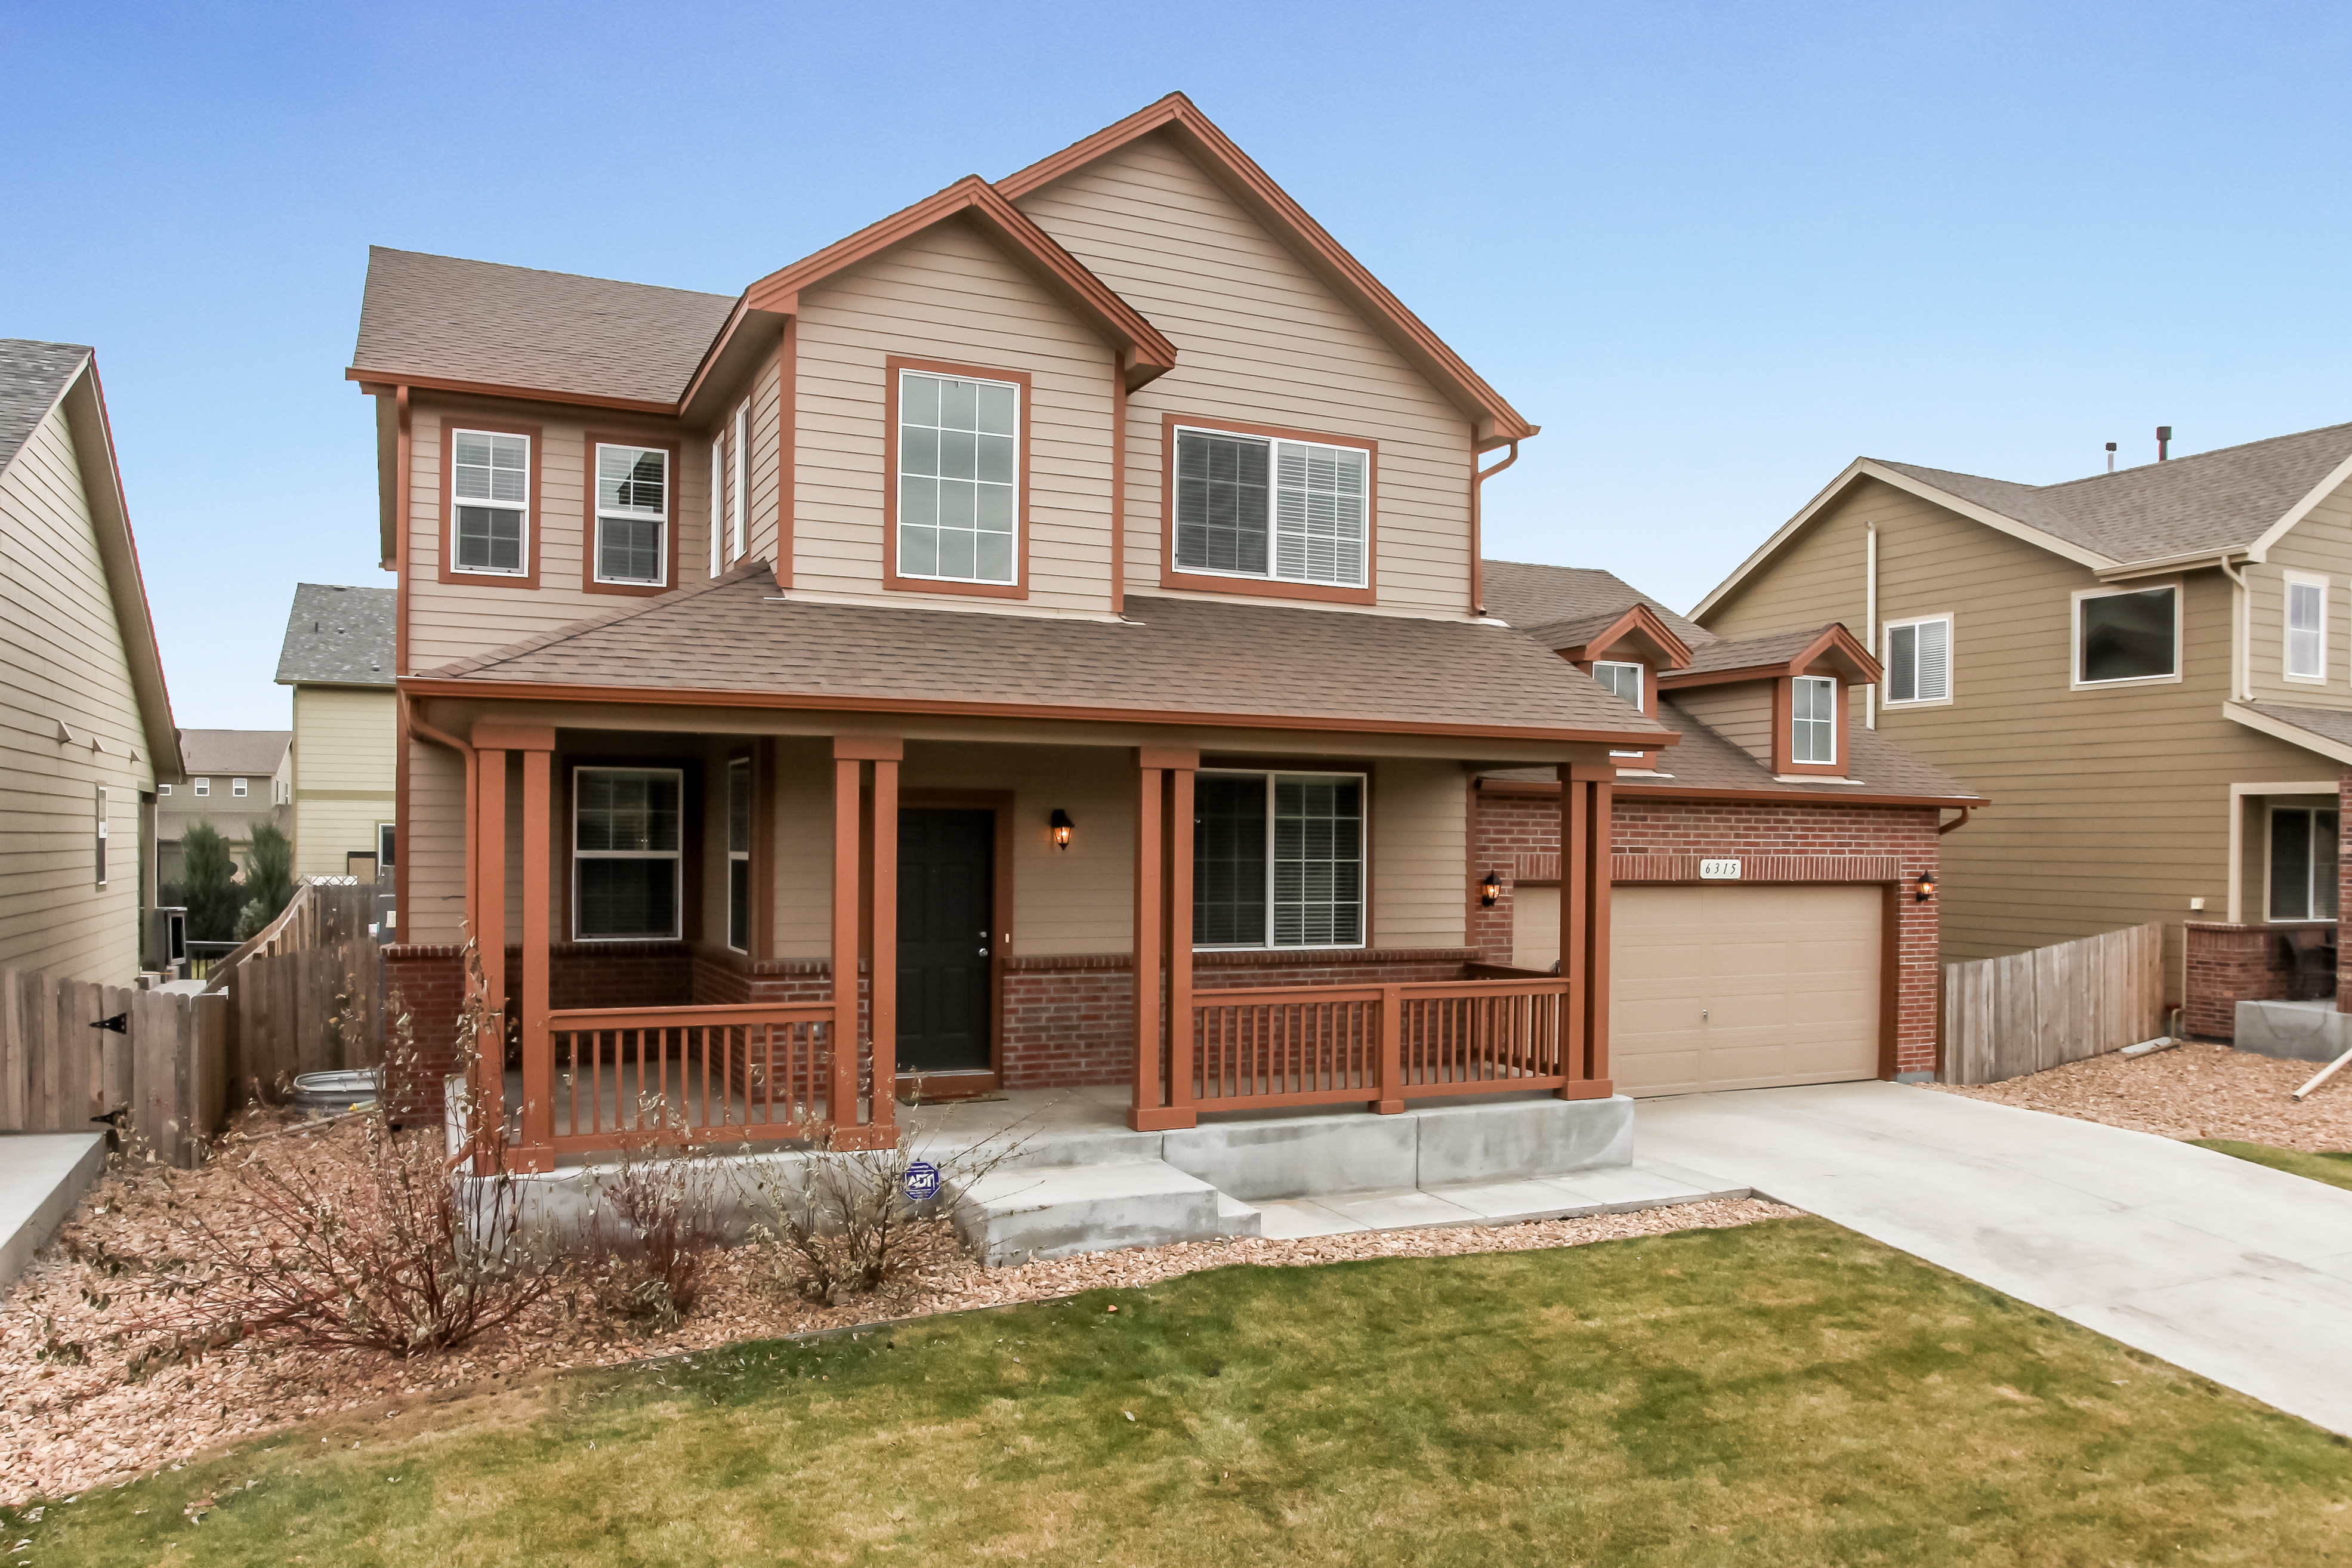 Beautiful home for sale fort collins real estate by for Beautiful homes for sale